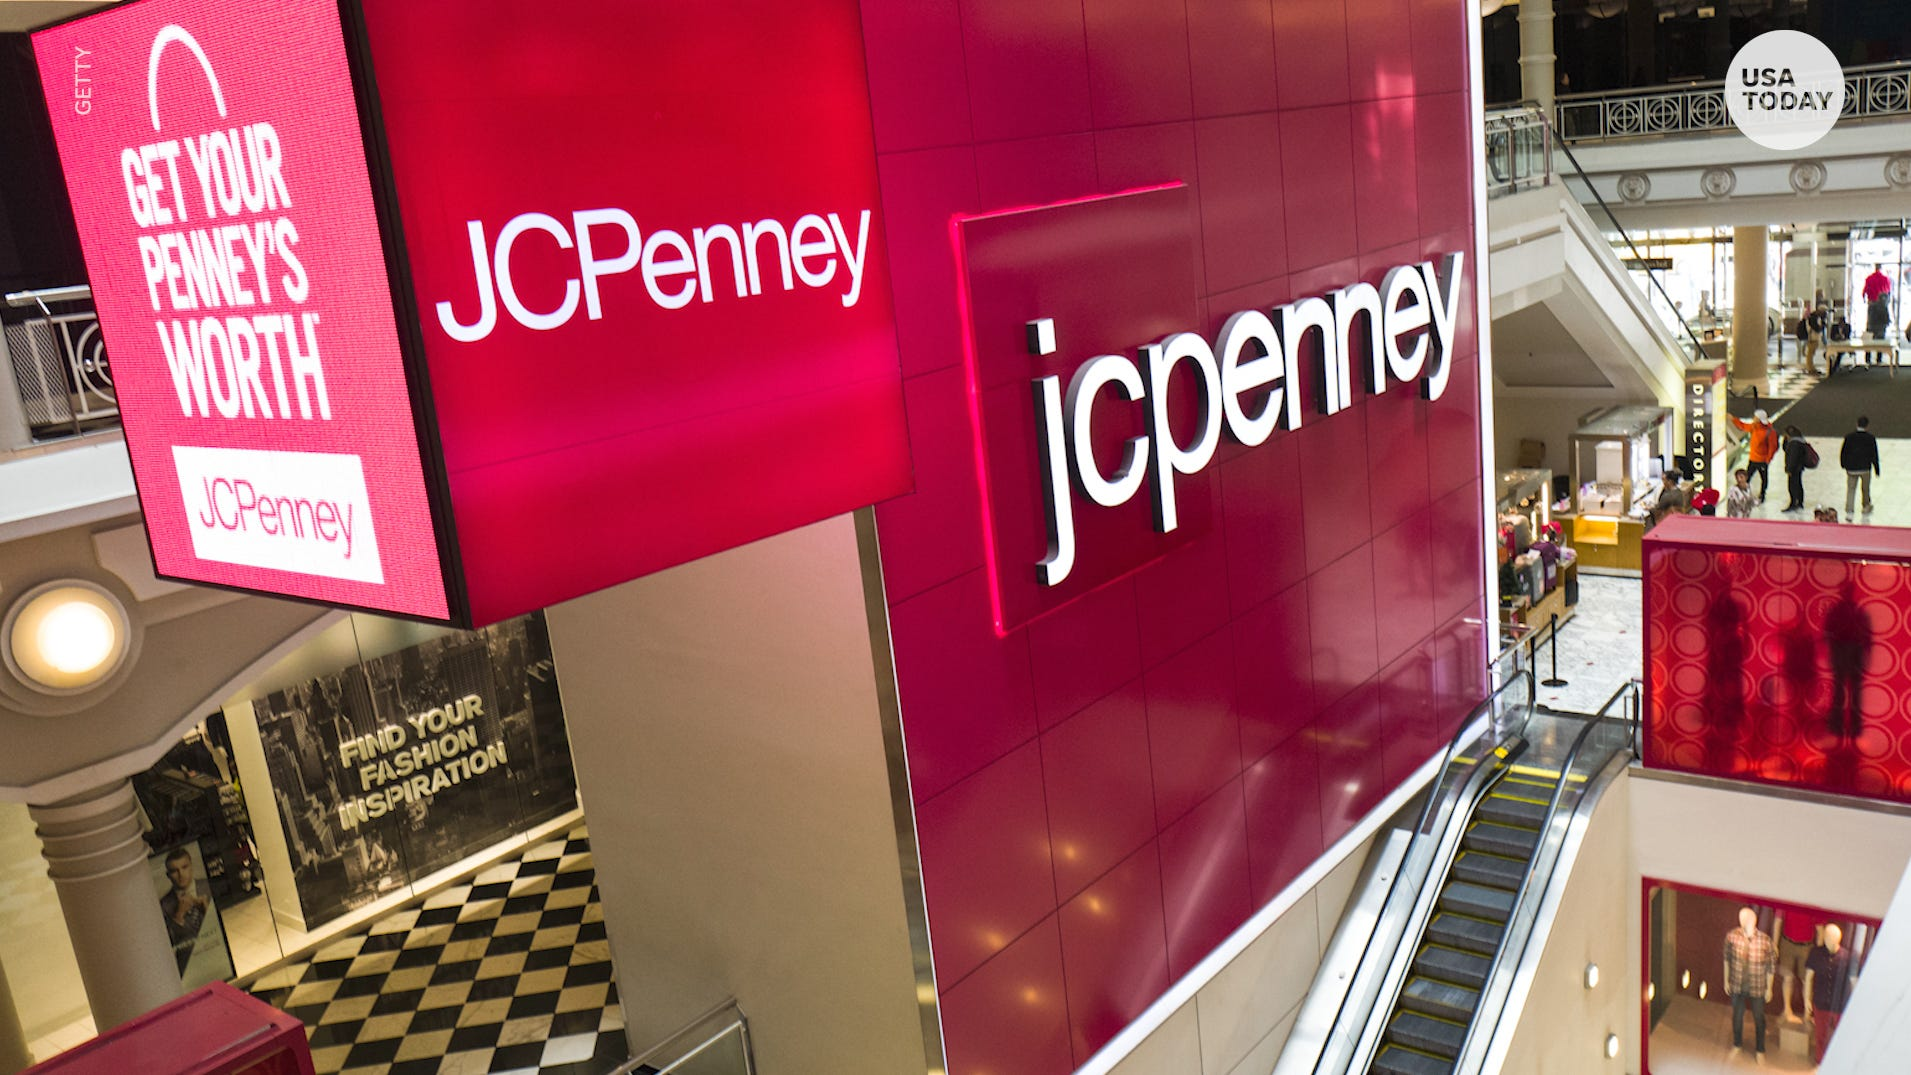 Jcpenney Going Out Of Business Sales Underway At Closing Stores,Undercut Shaved Hair Designs For Black Females